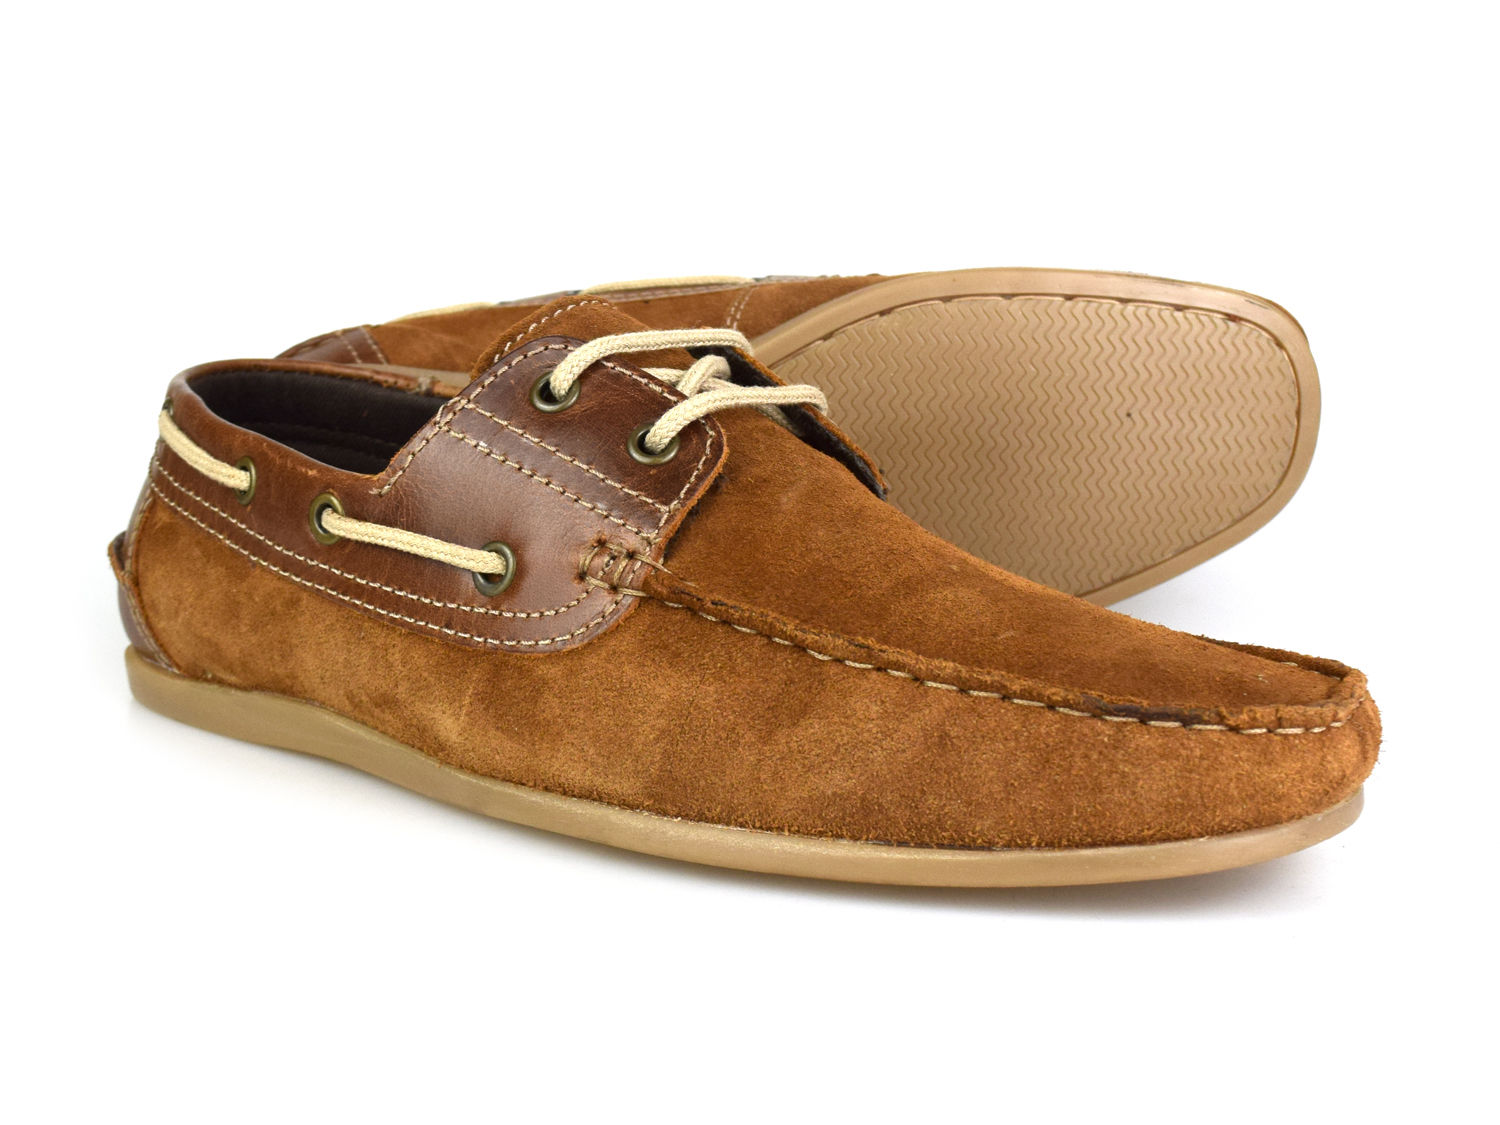 Red Tape Sandy Tan Suede Mens Casual Boat Shoes RRP £45 Free UK P/&P!